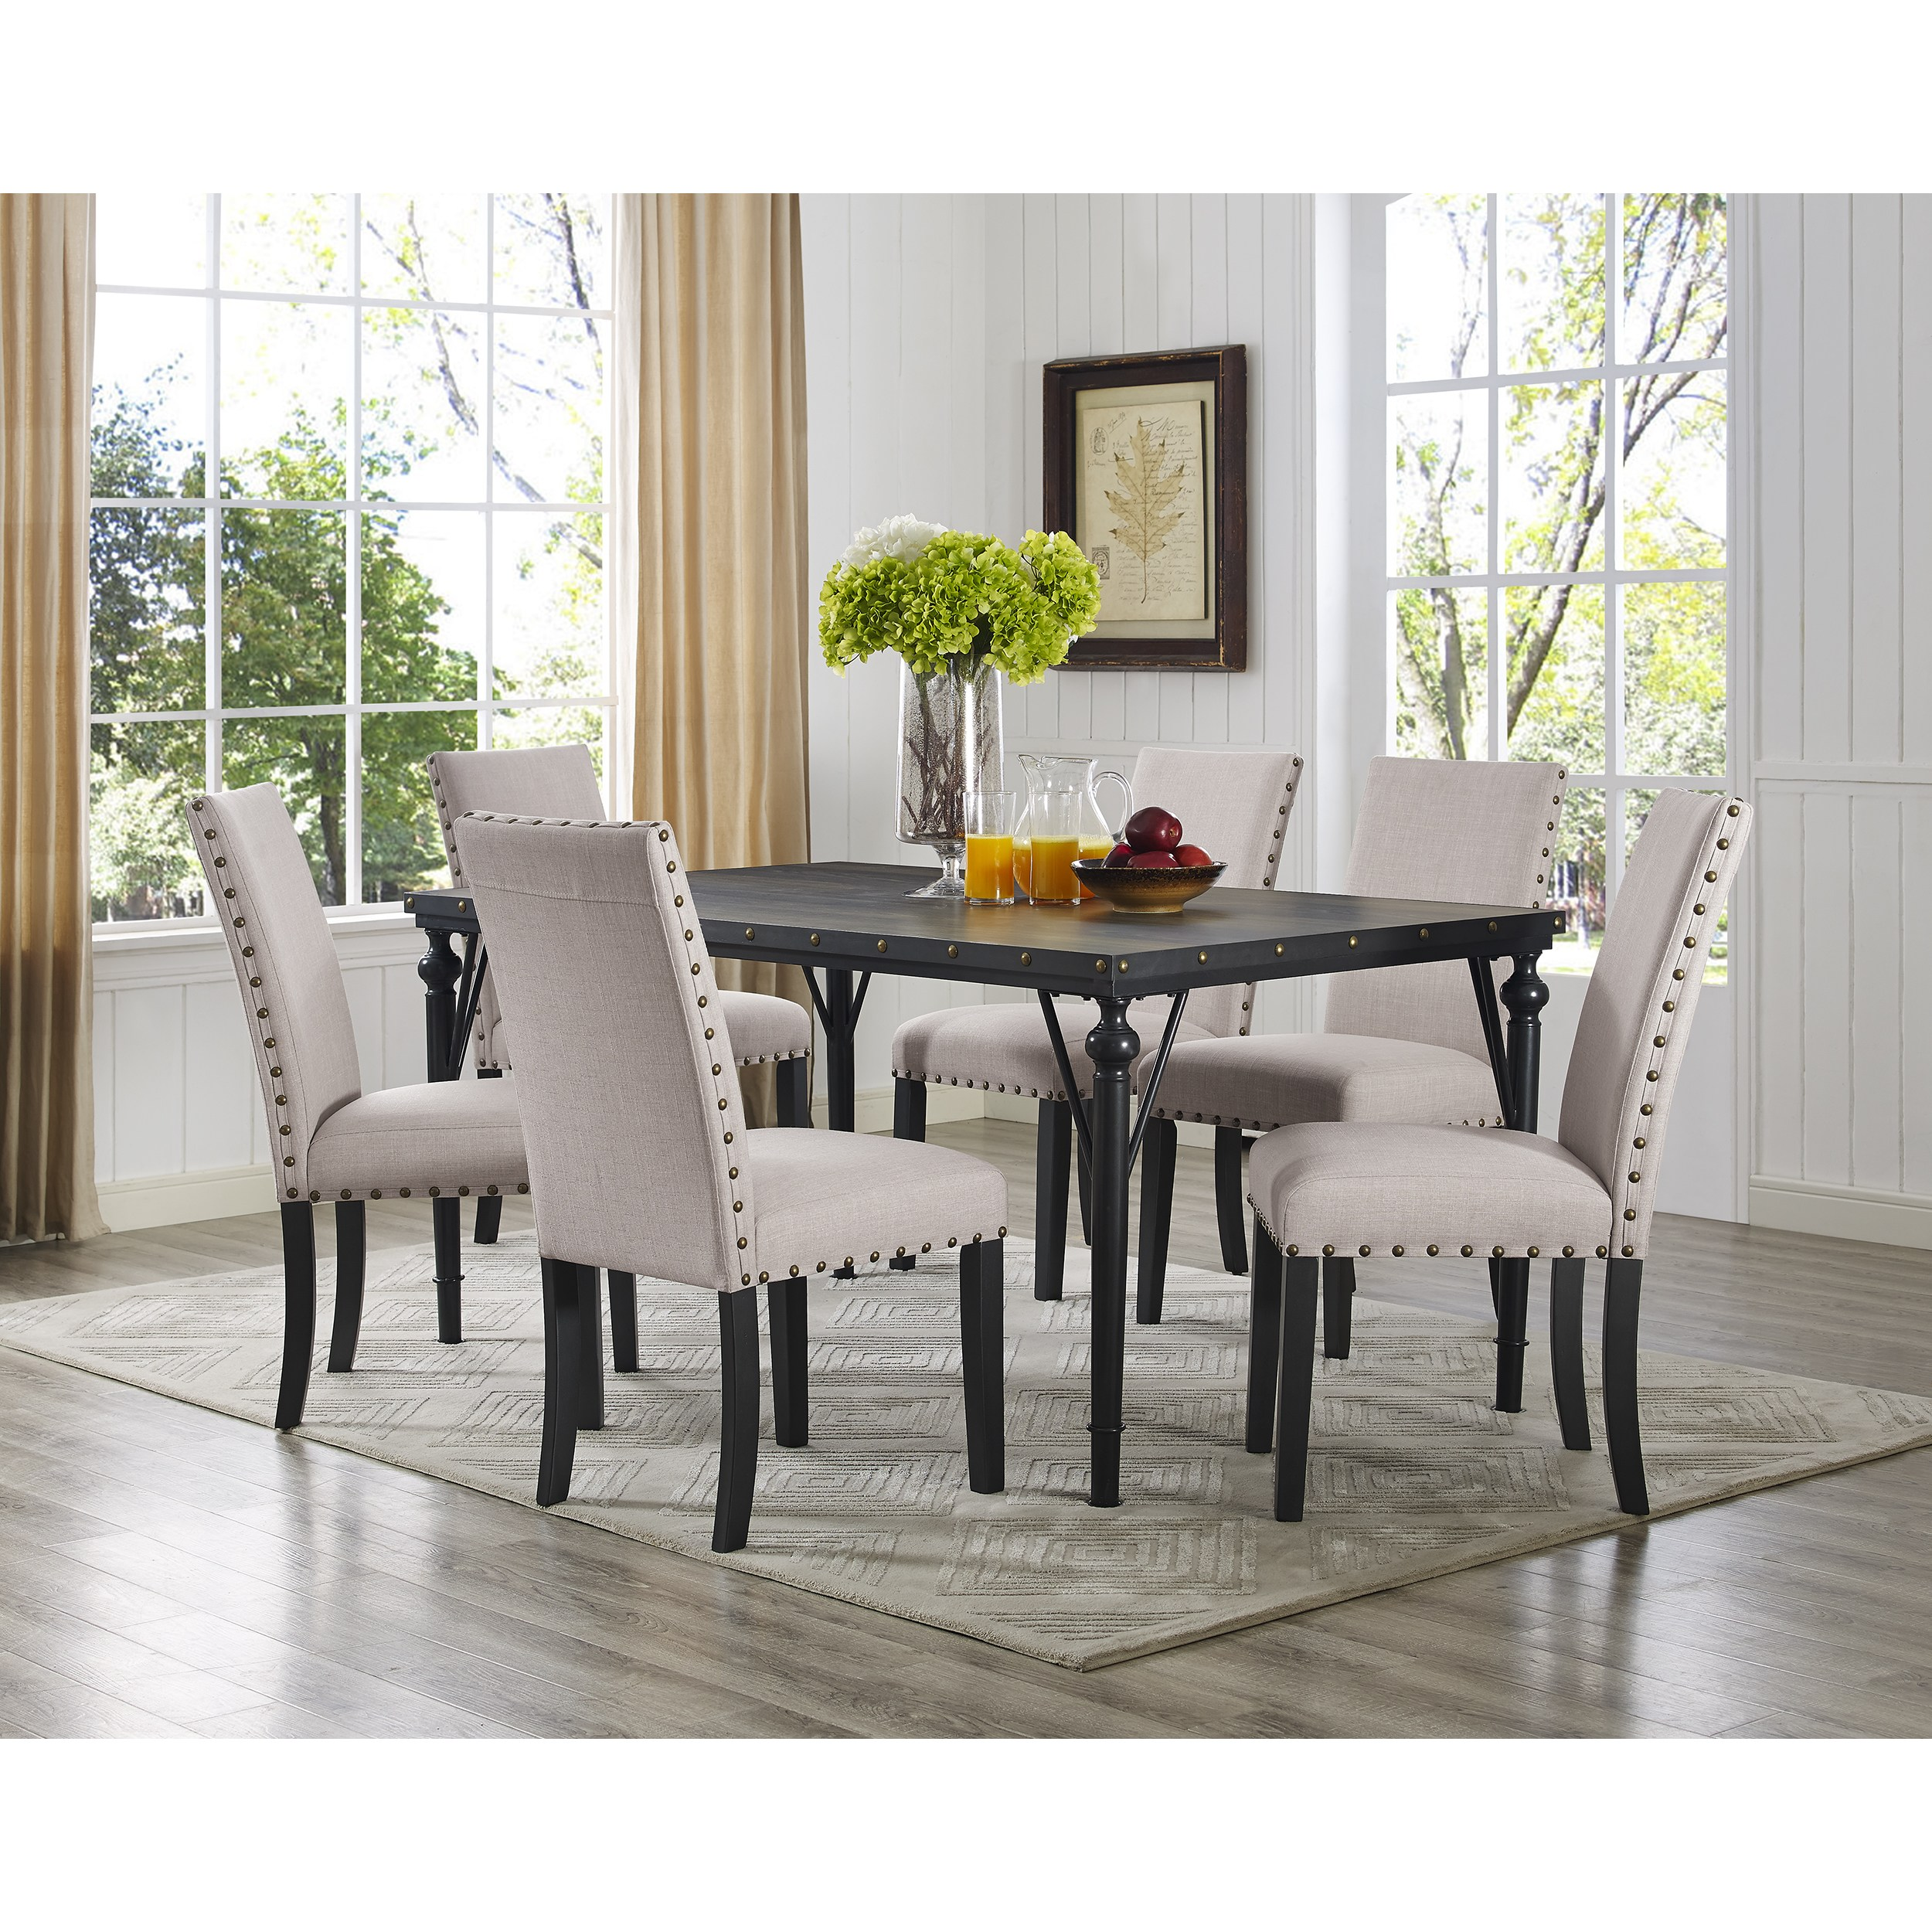 Roundhill Furniture Biony 7 Piece Wooden Dining Table Set